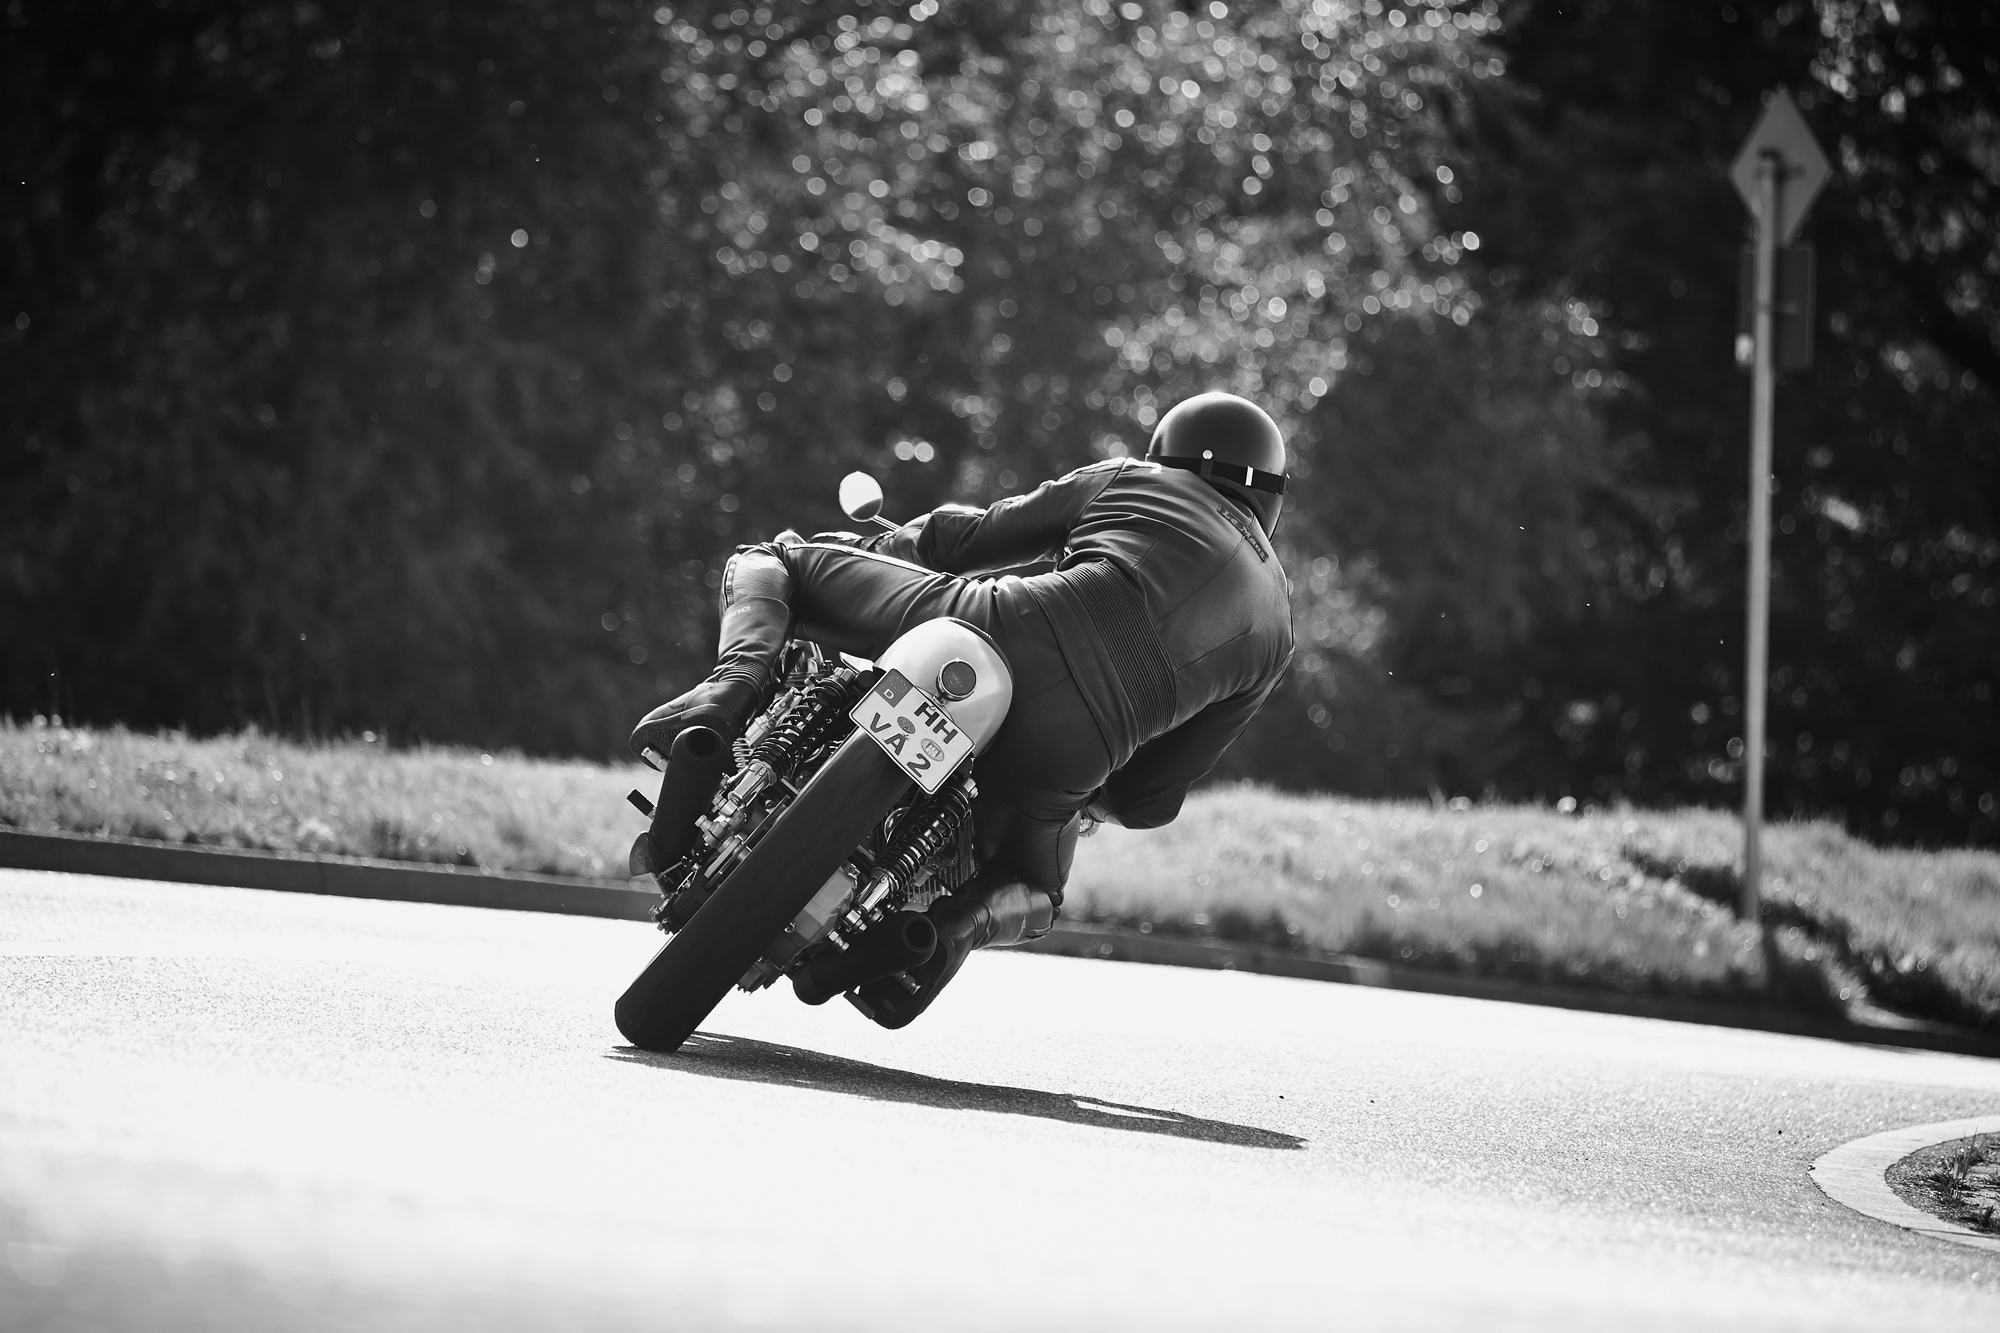 caferacer_17